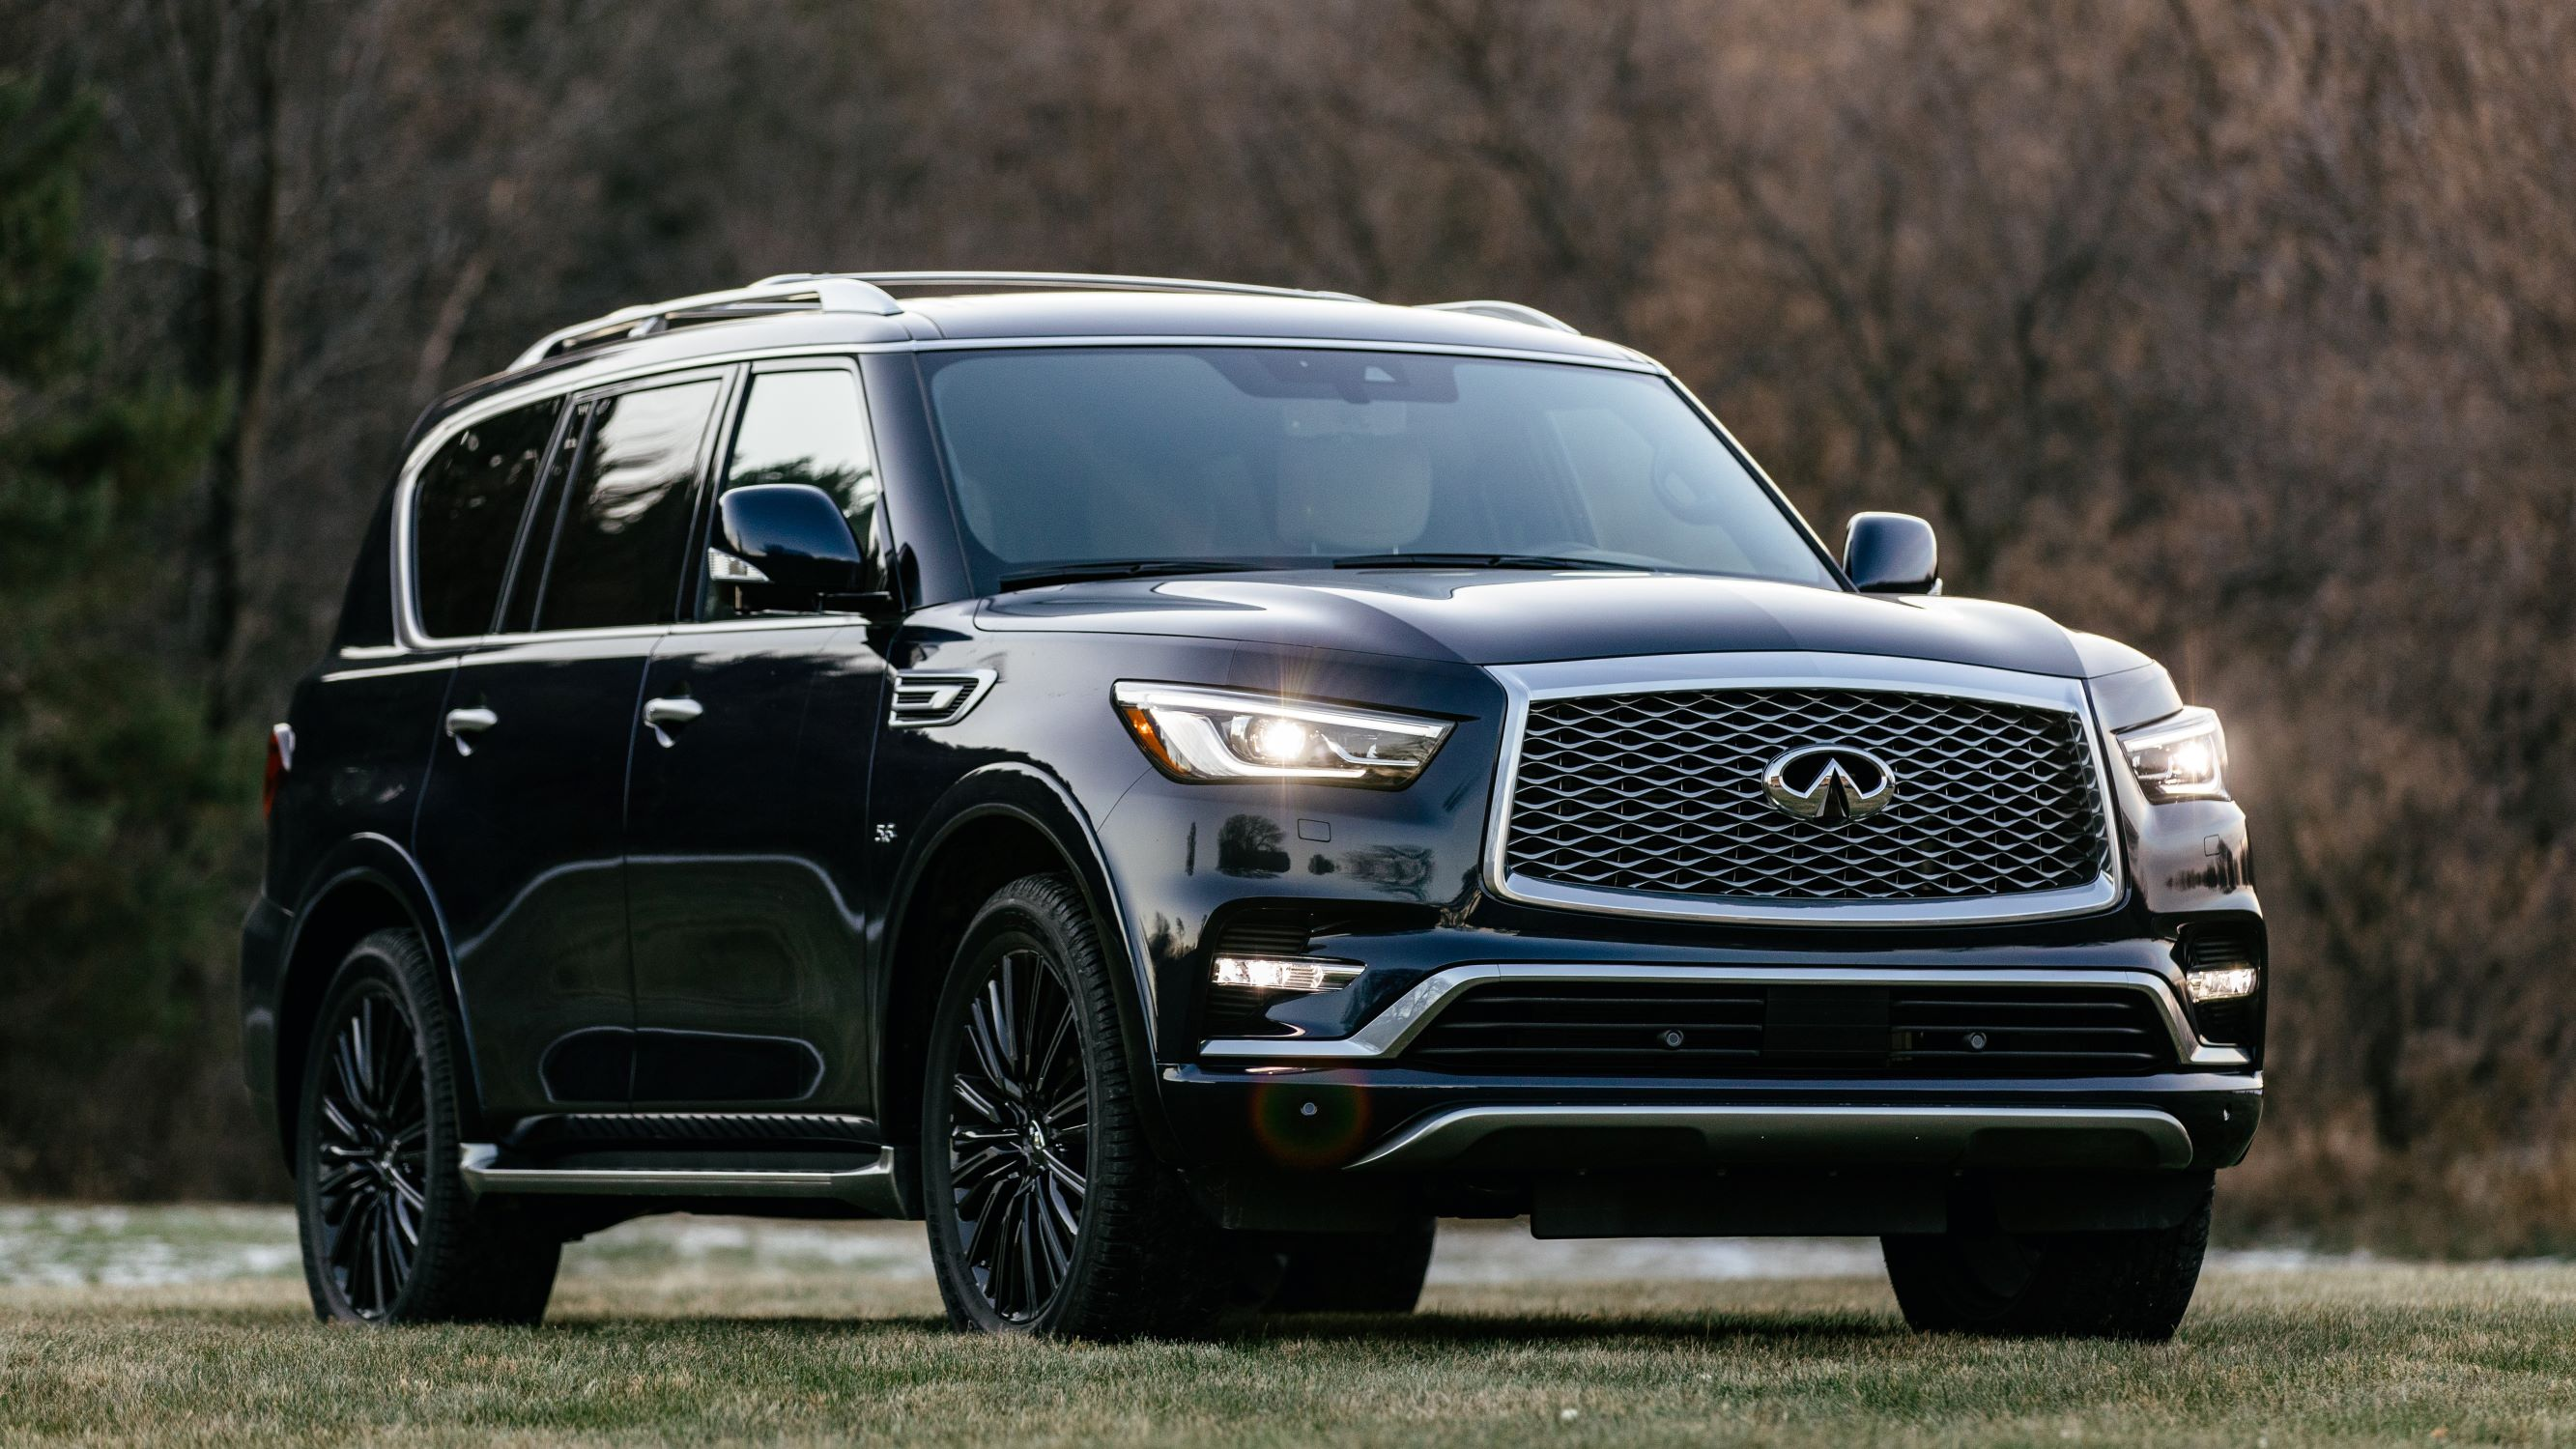 Why The 2019 Infiniti Qx80 Is A Rolling Entertainment Playground